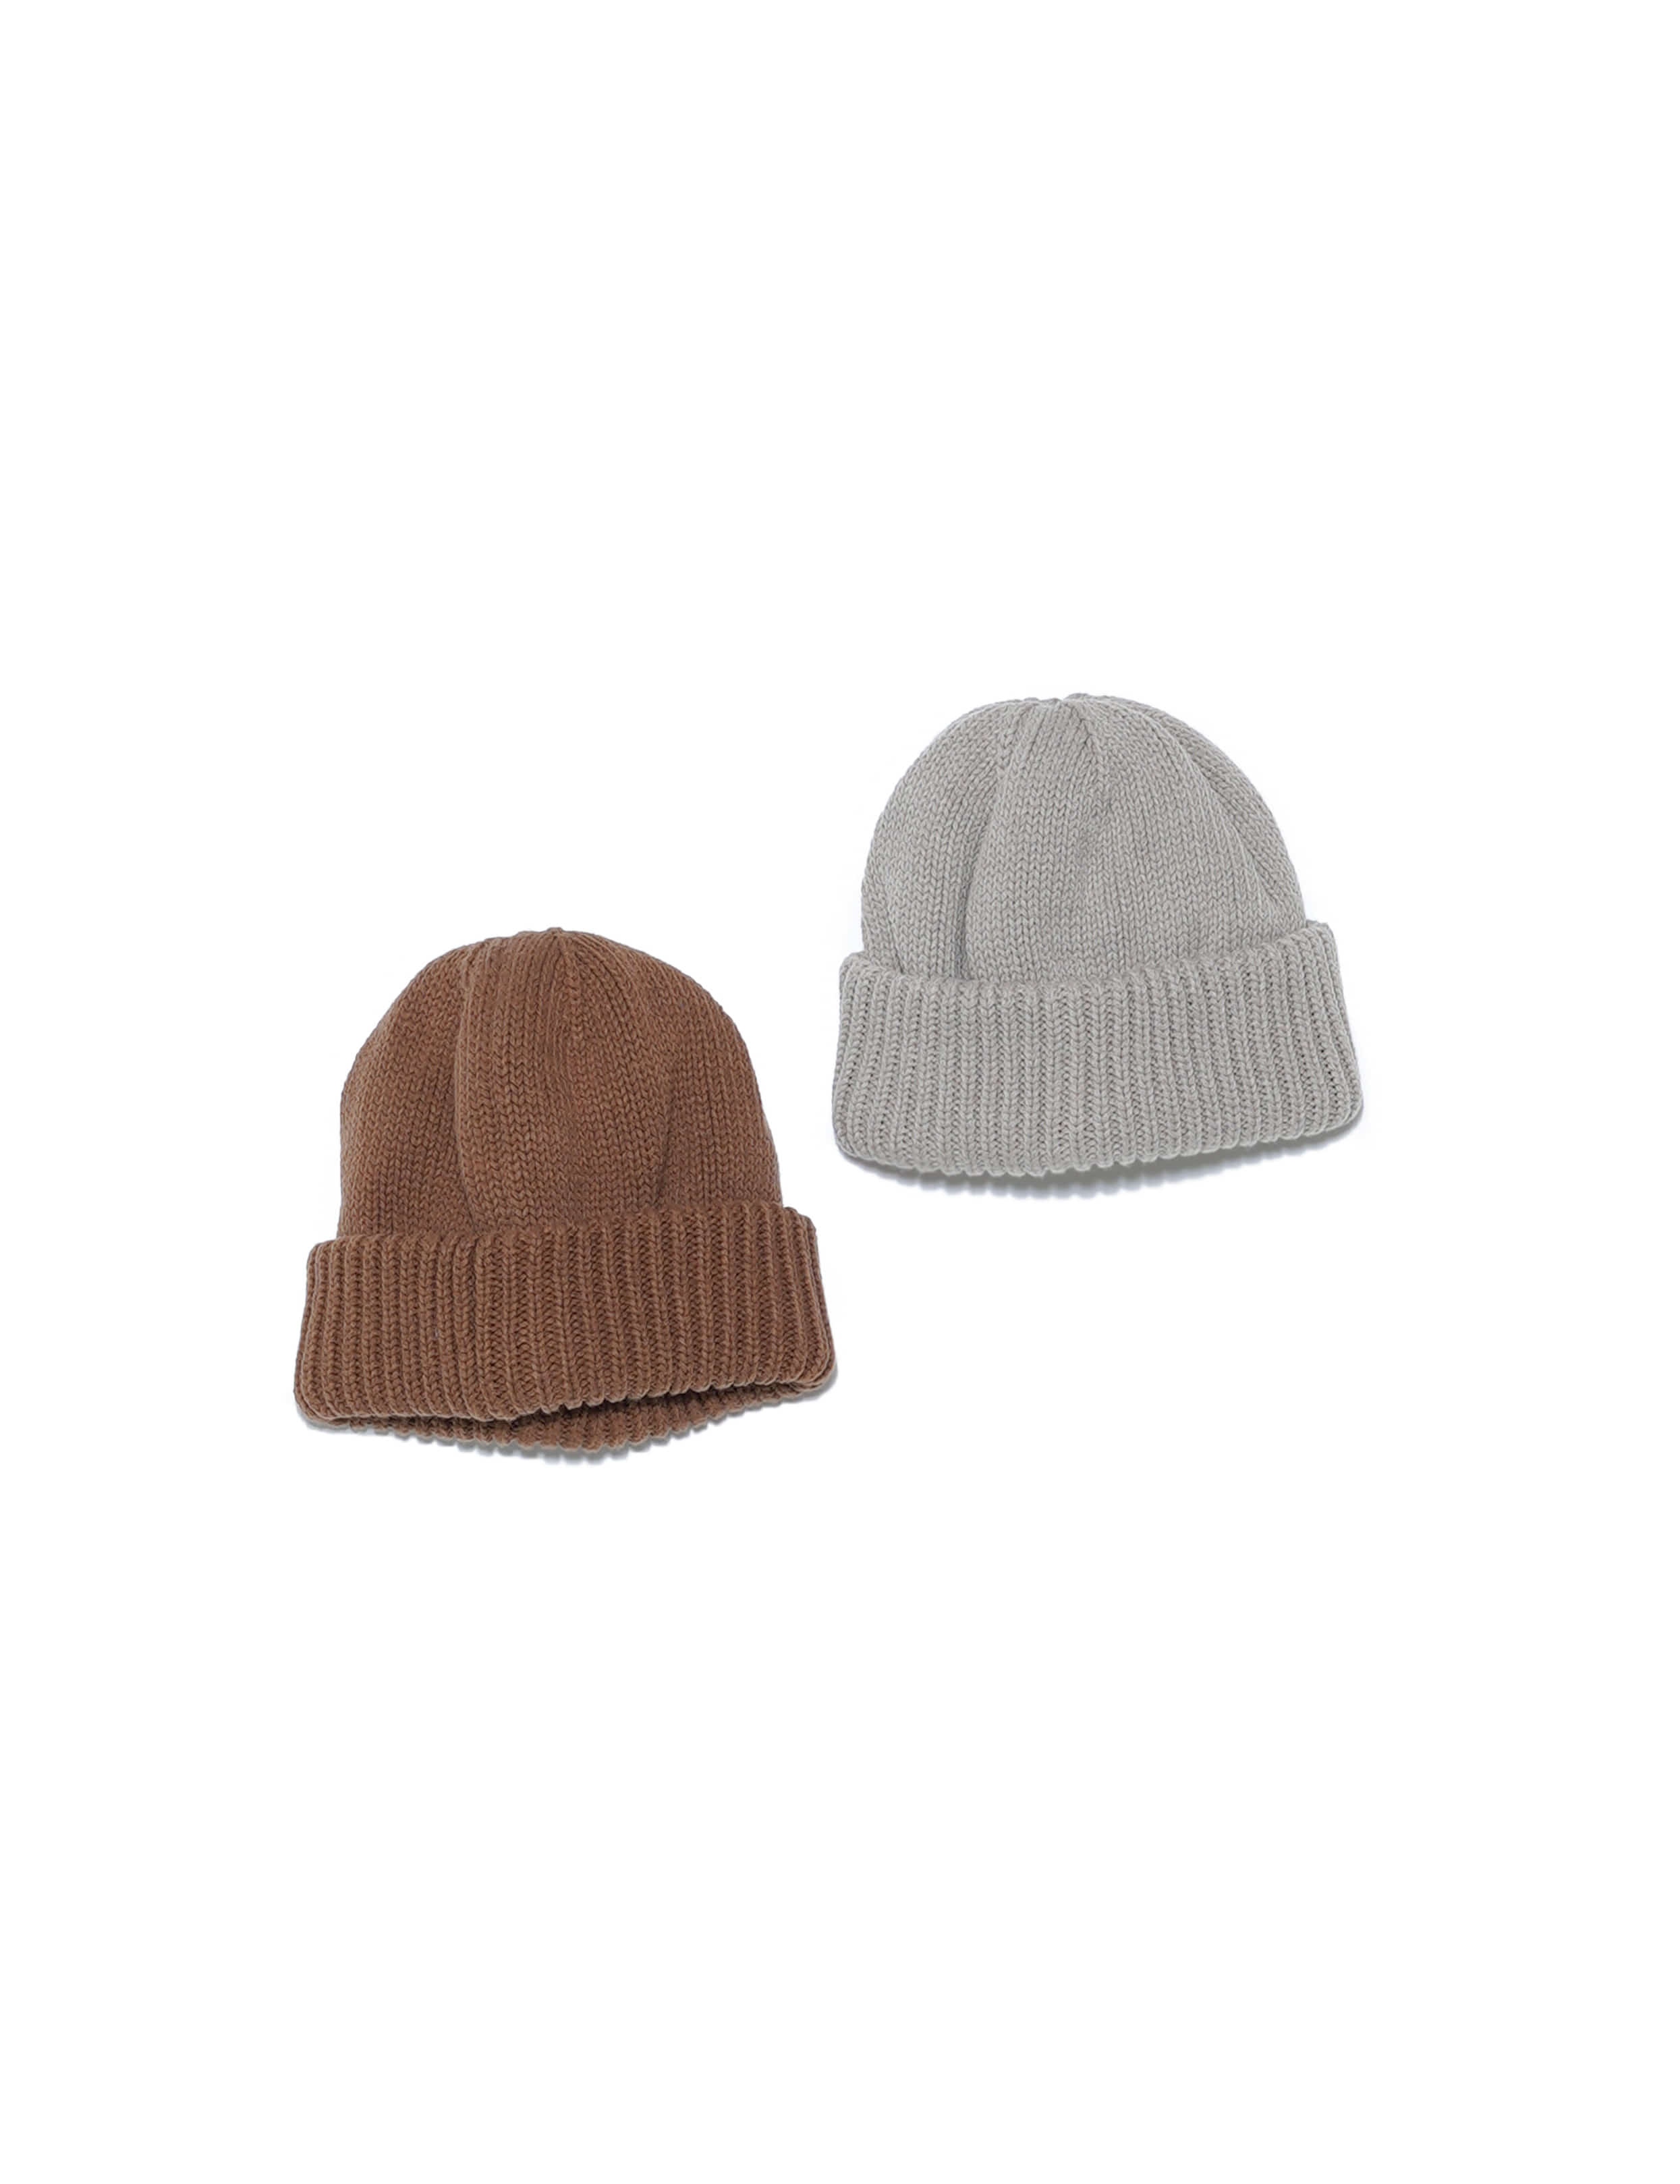 KNIT CAP 1 (2 COLORS)